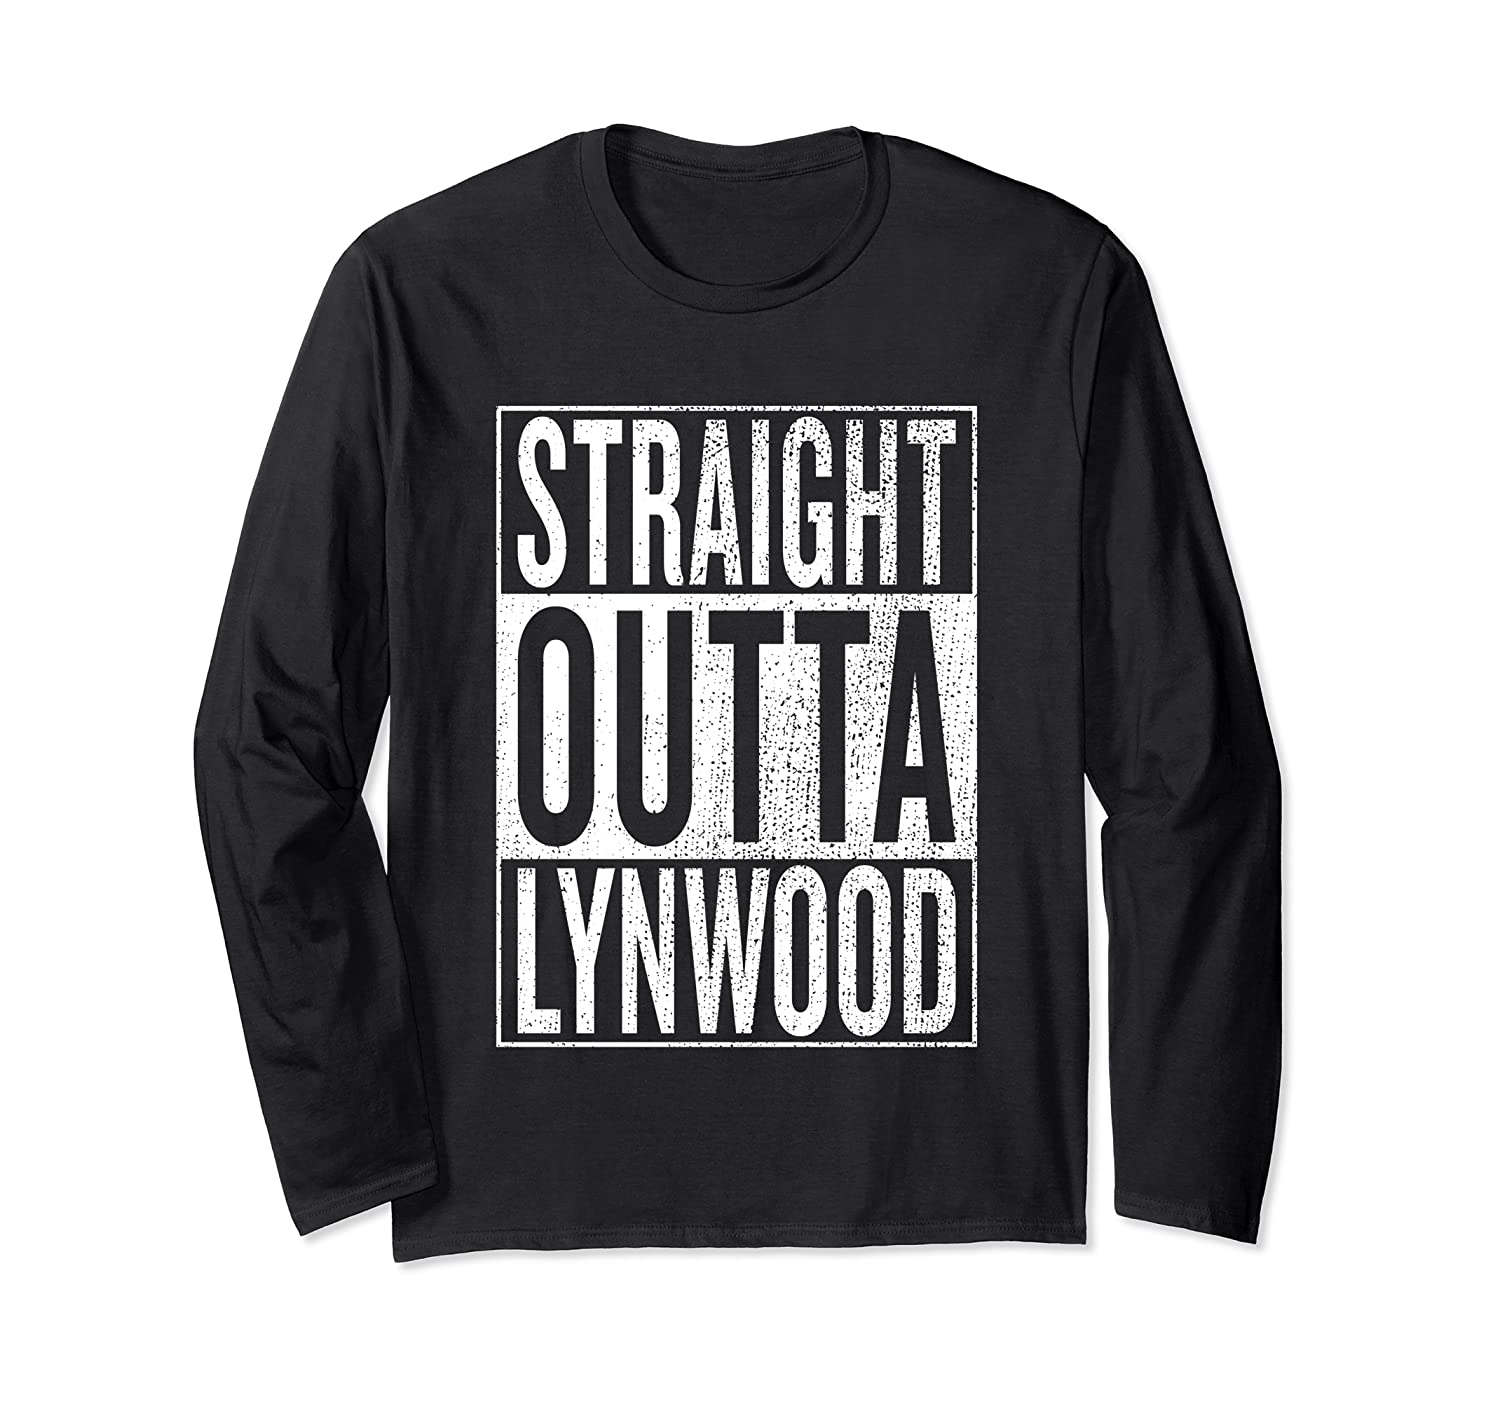 Straight Outta Lynwood Great Travel Outfit And Gift Idea Long Sleeve T-shirt